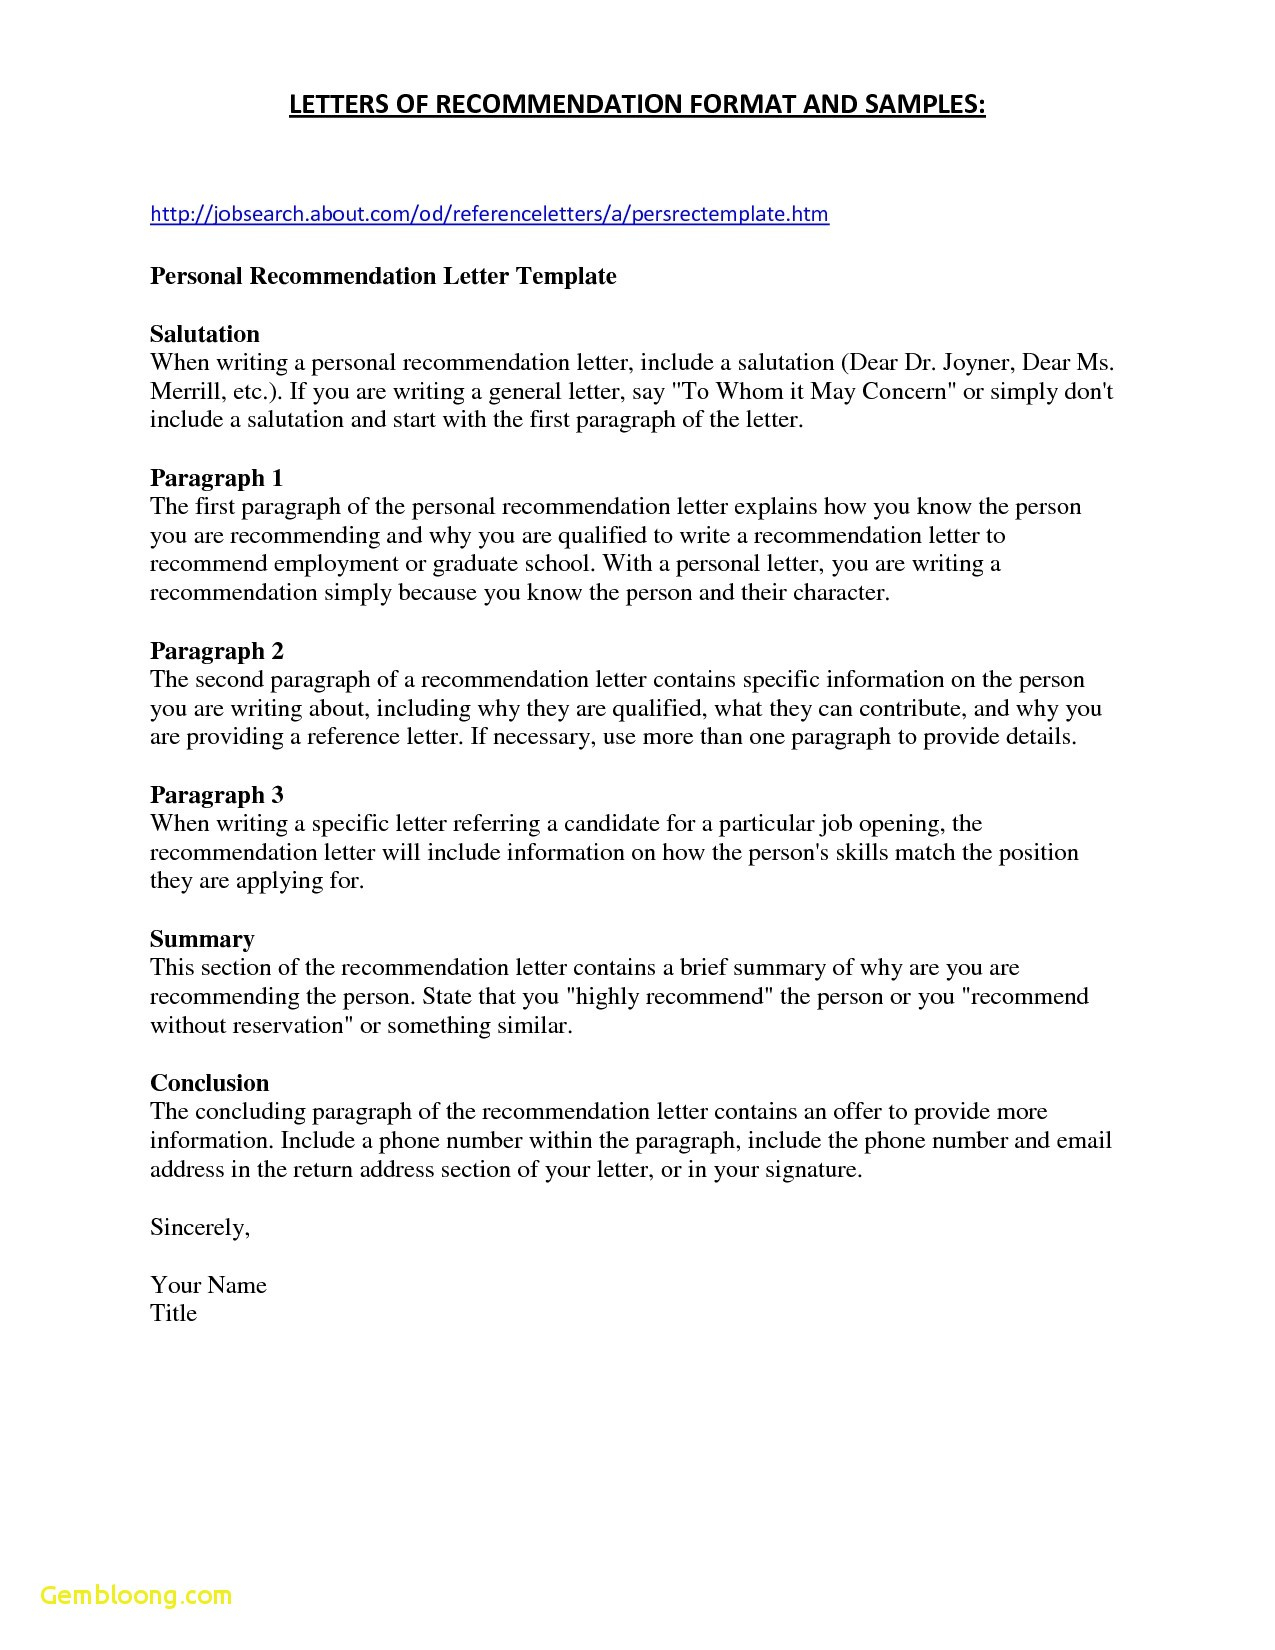 Template for College Recommendation Letter - Letter Re Mendation Template for College Admission New College